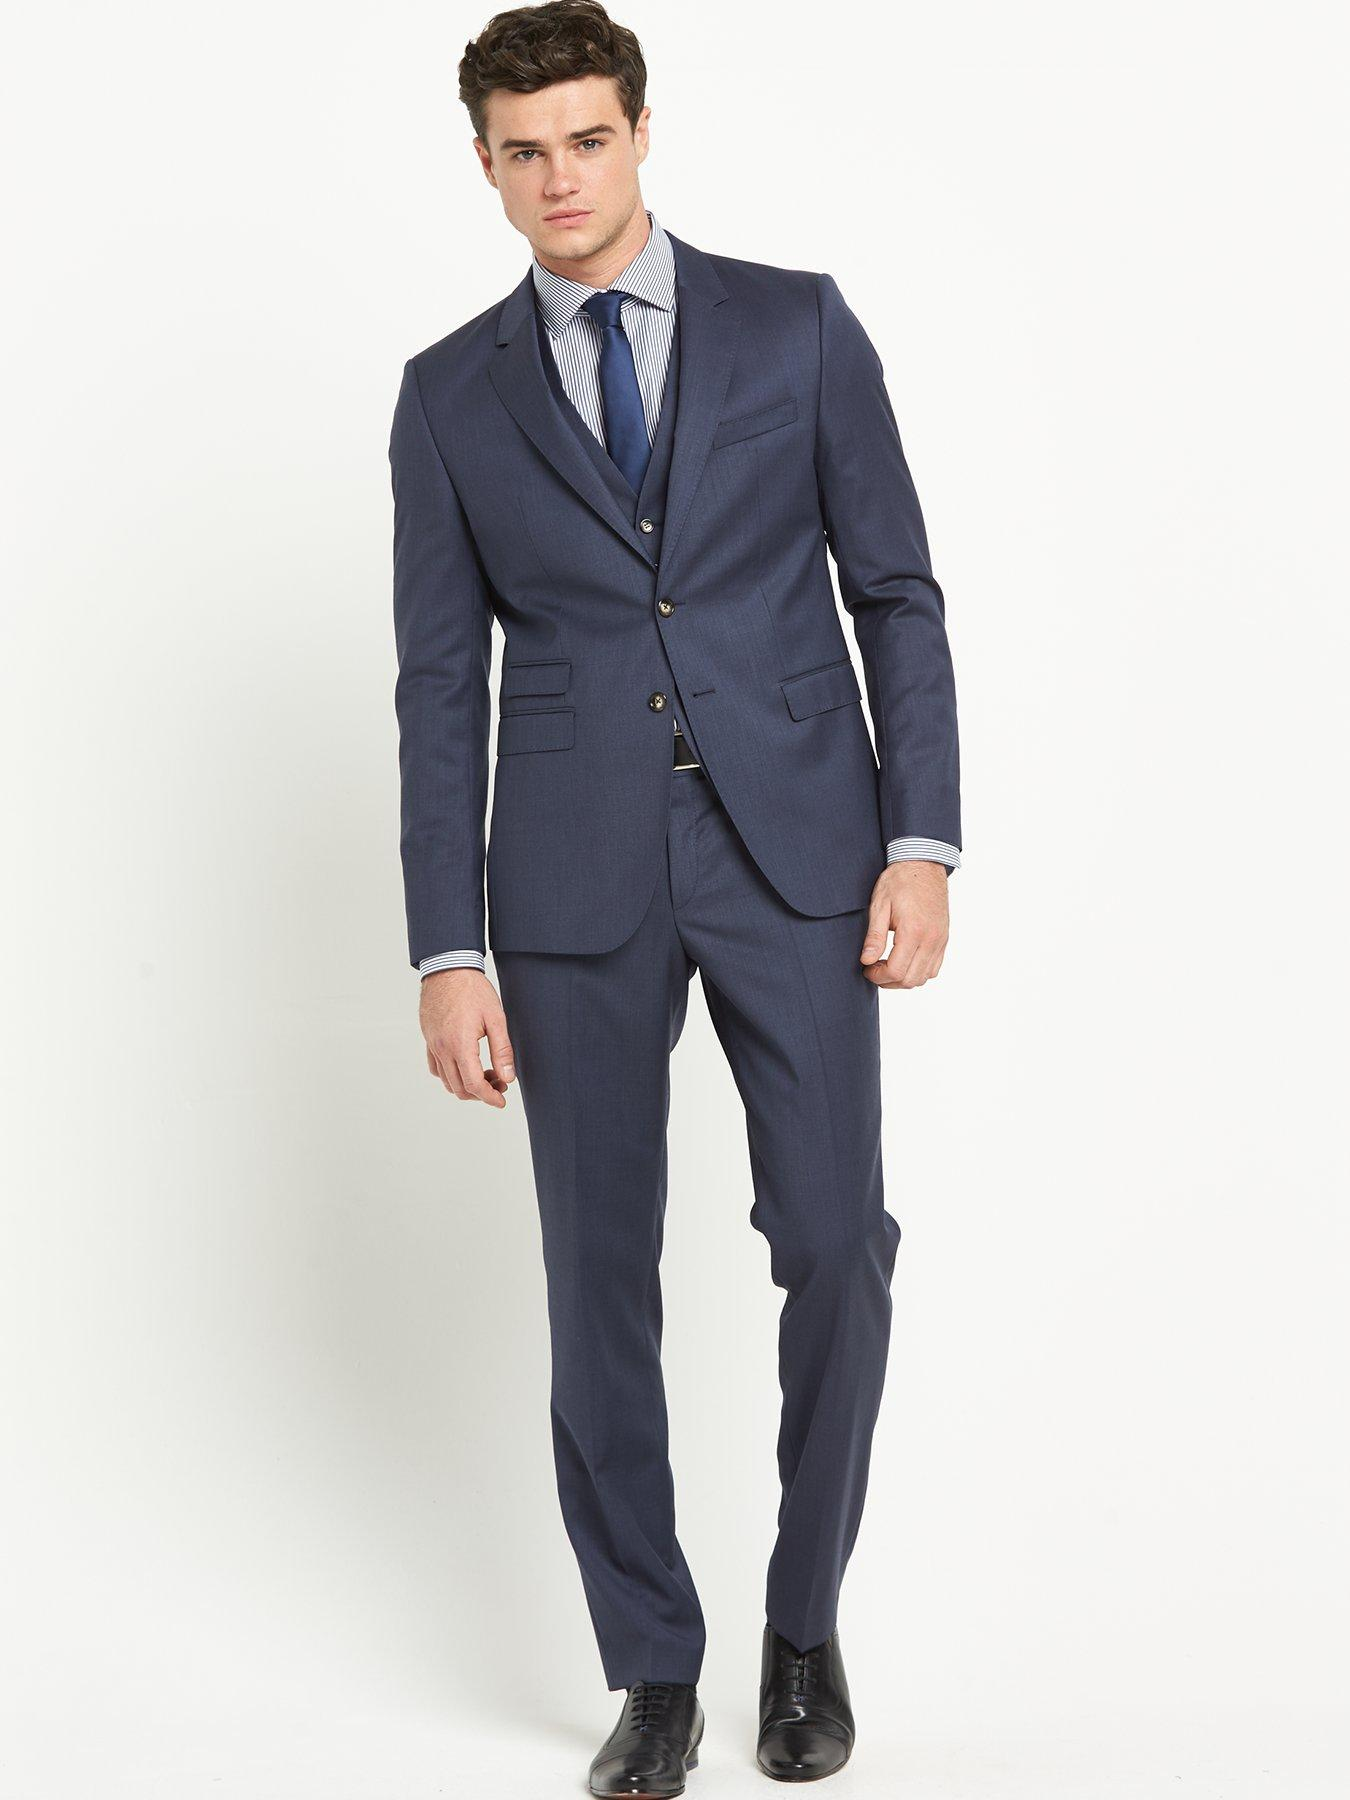 Mens jacket david jones - Collection Tommy Hilfiger Mens Jackets Pictures The Fashions Of Collection Tommy Hilfiger Mens Jackets Pictures The Fashions Of